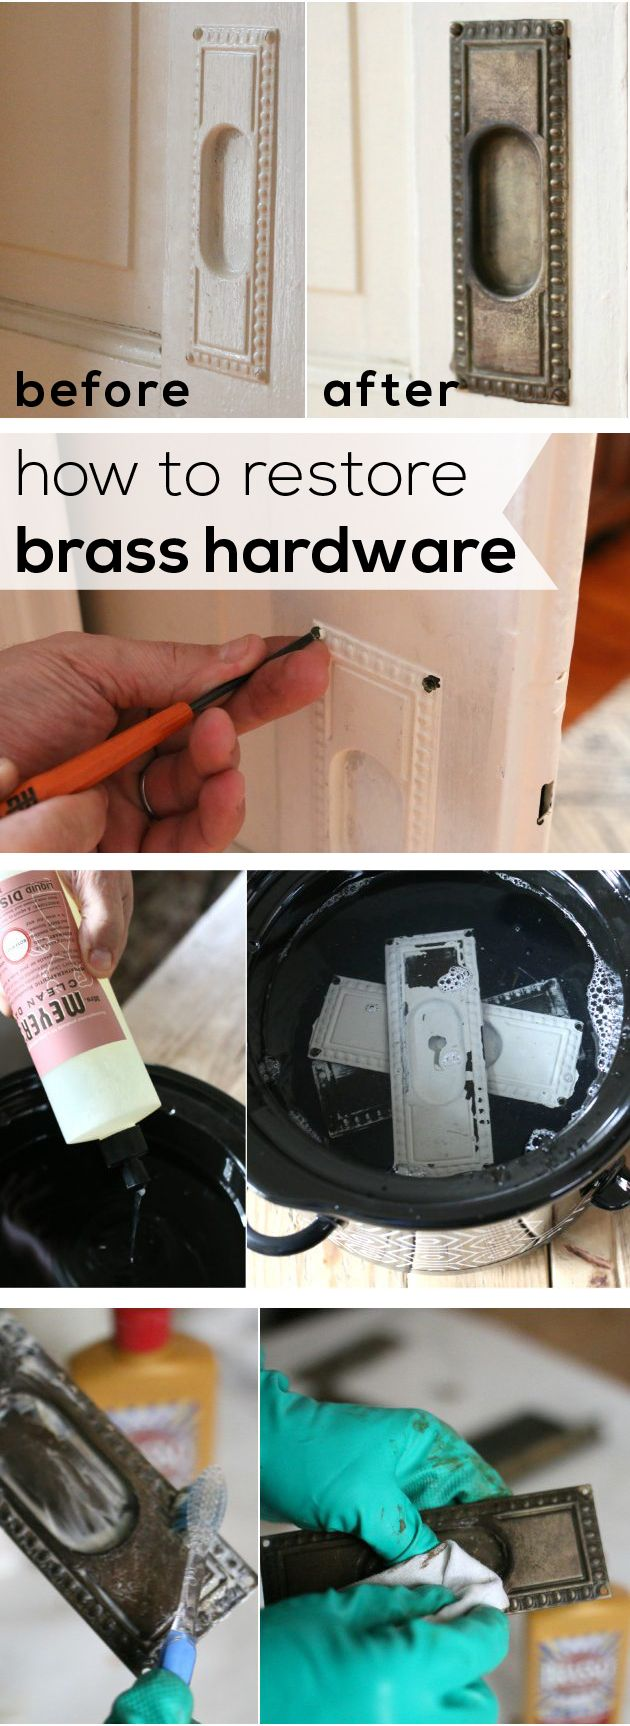 With the help of a slow cooker, water and dish soap, caked-on paint can be easily removed to restore the original details that give character to a home. Restore old brass hardware around the house with these easy instructions. http://www.ehow.com/how_6831910_restore-brass-hardware.html?utm_source=pinterest.com&utm_medium=referral&utm_content=inline&utm_campaign=fanpage